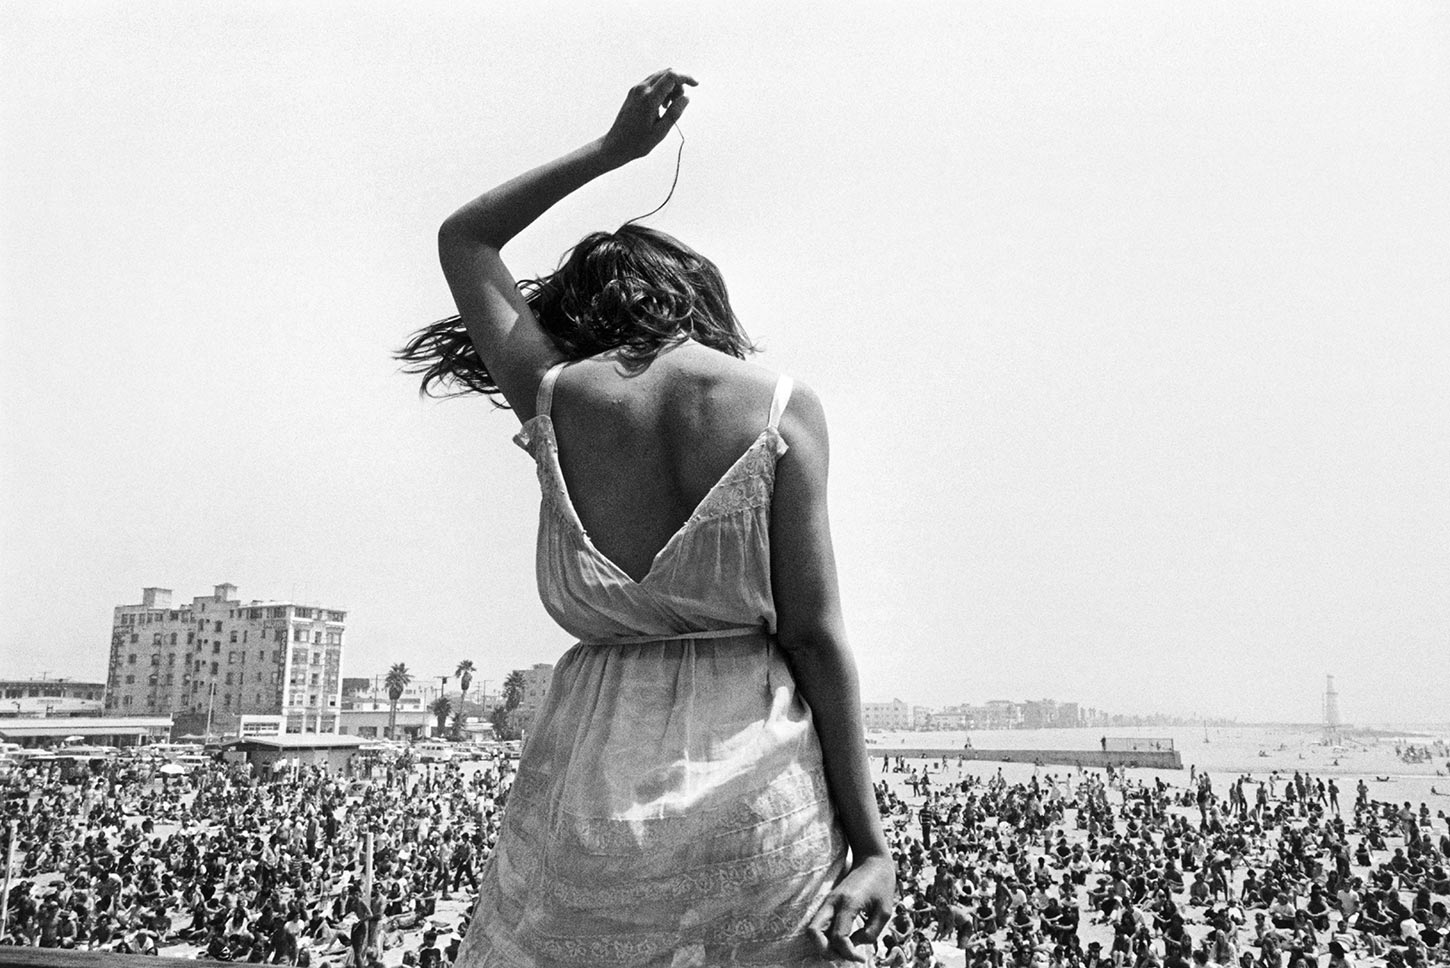 Venice Beach Rock Festival. California. 1968.